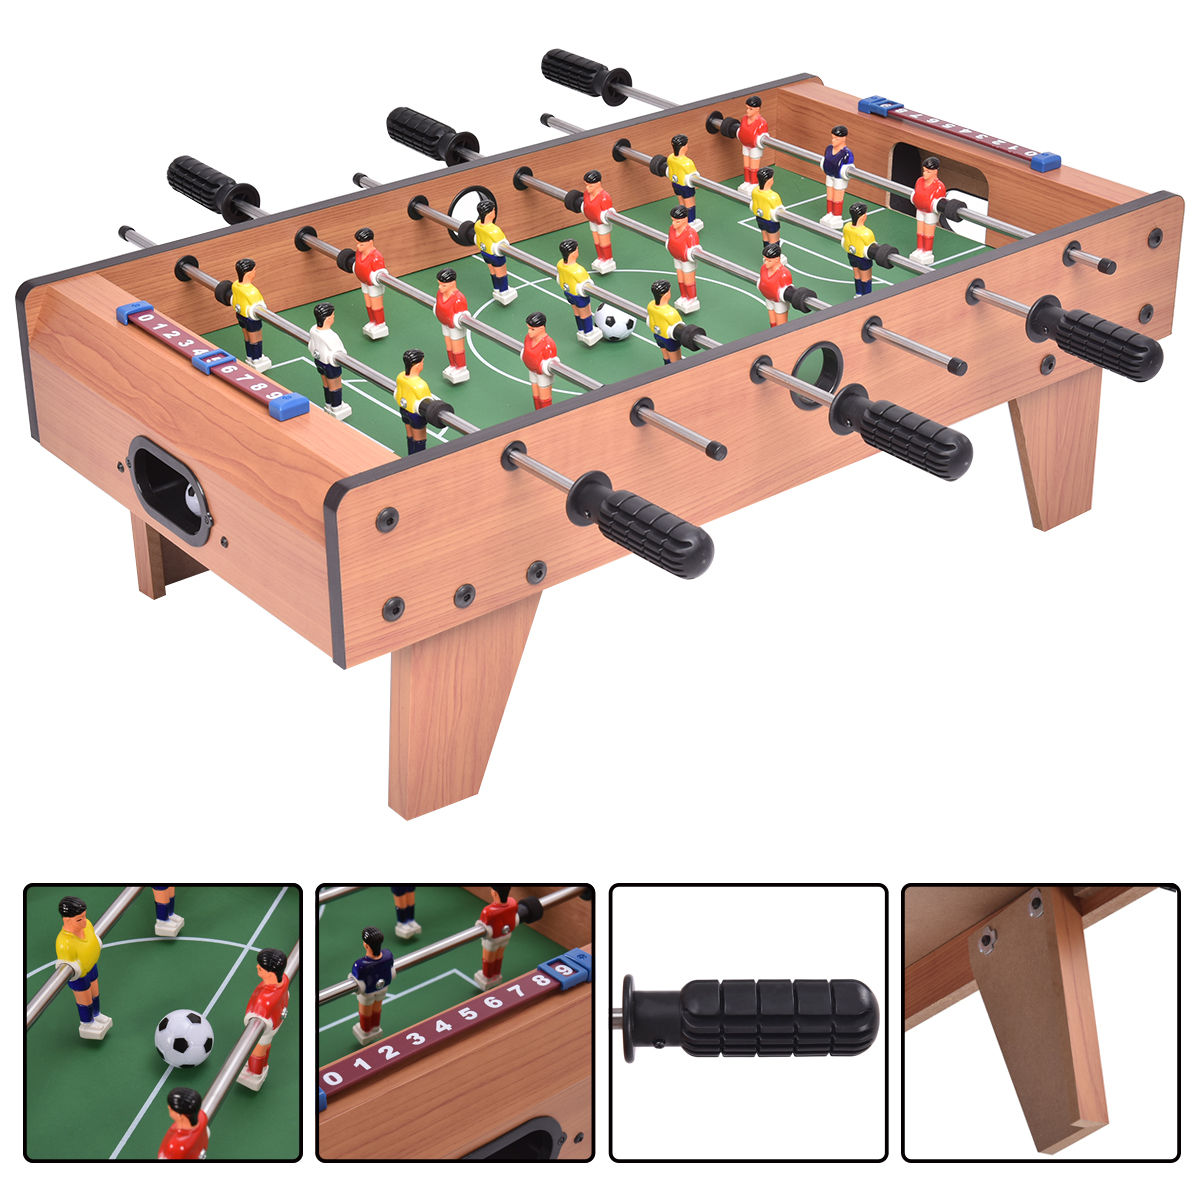 Costway 27u0027u0027 Foosball Table Competition Game Room Soccer Football Sports  Indoor ...